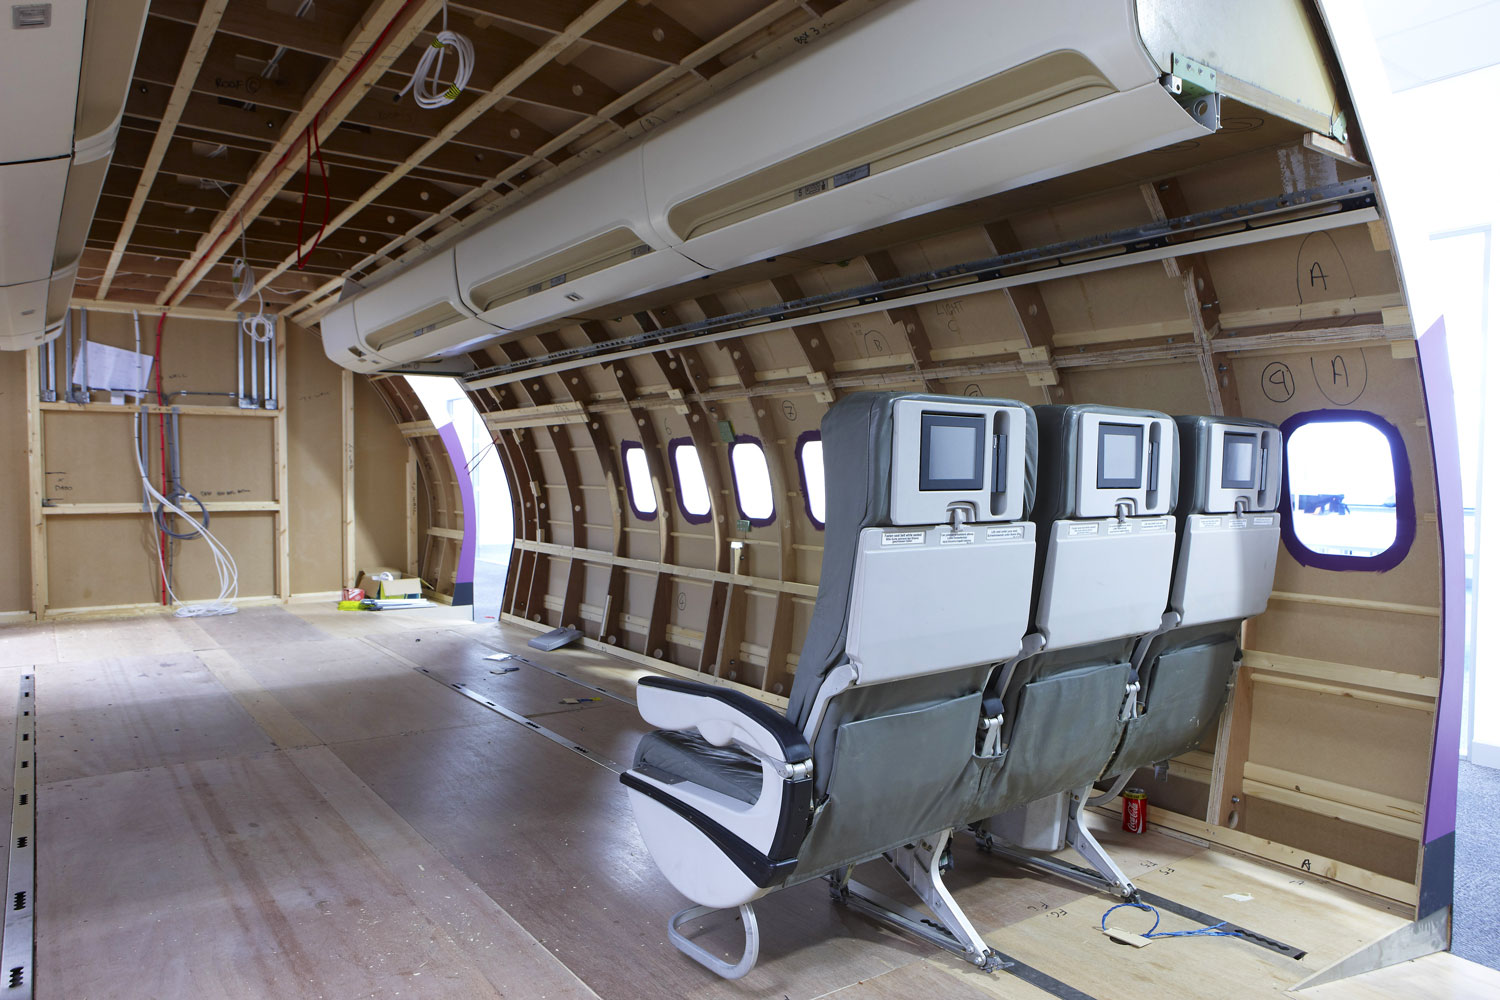 Sandwell College Aircrew Training Pod, West Bromwich, Birmingham | Interior Exterior Photography | Building Photography